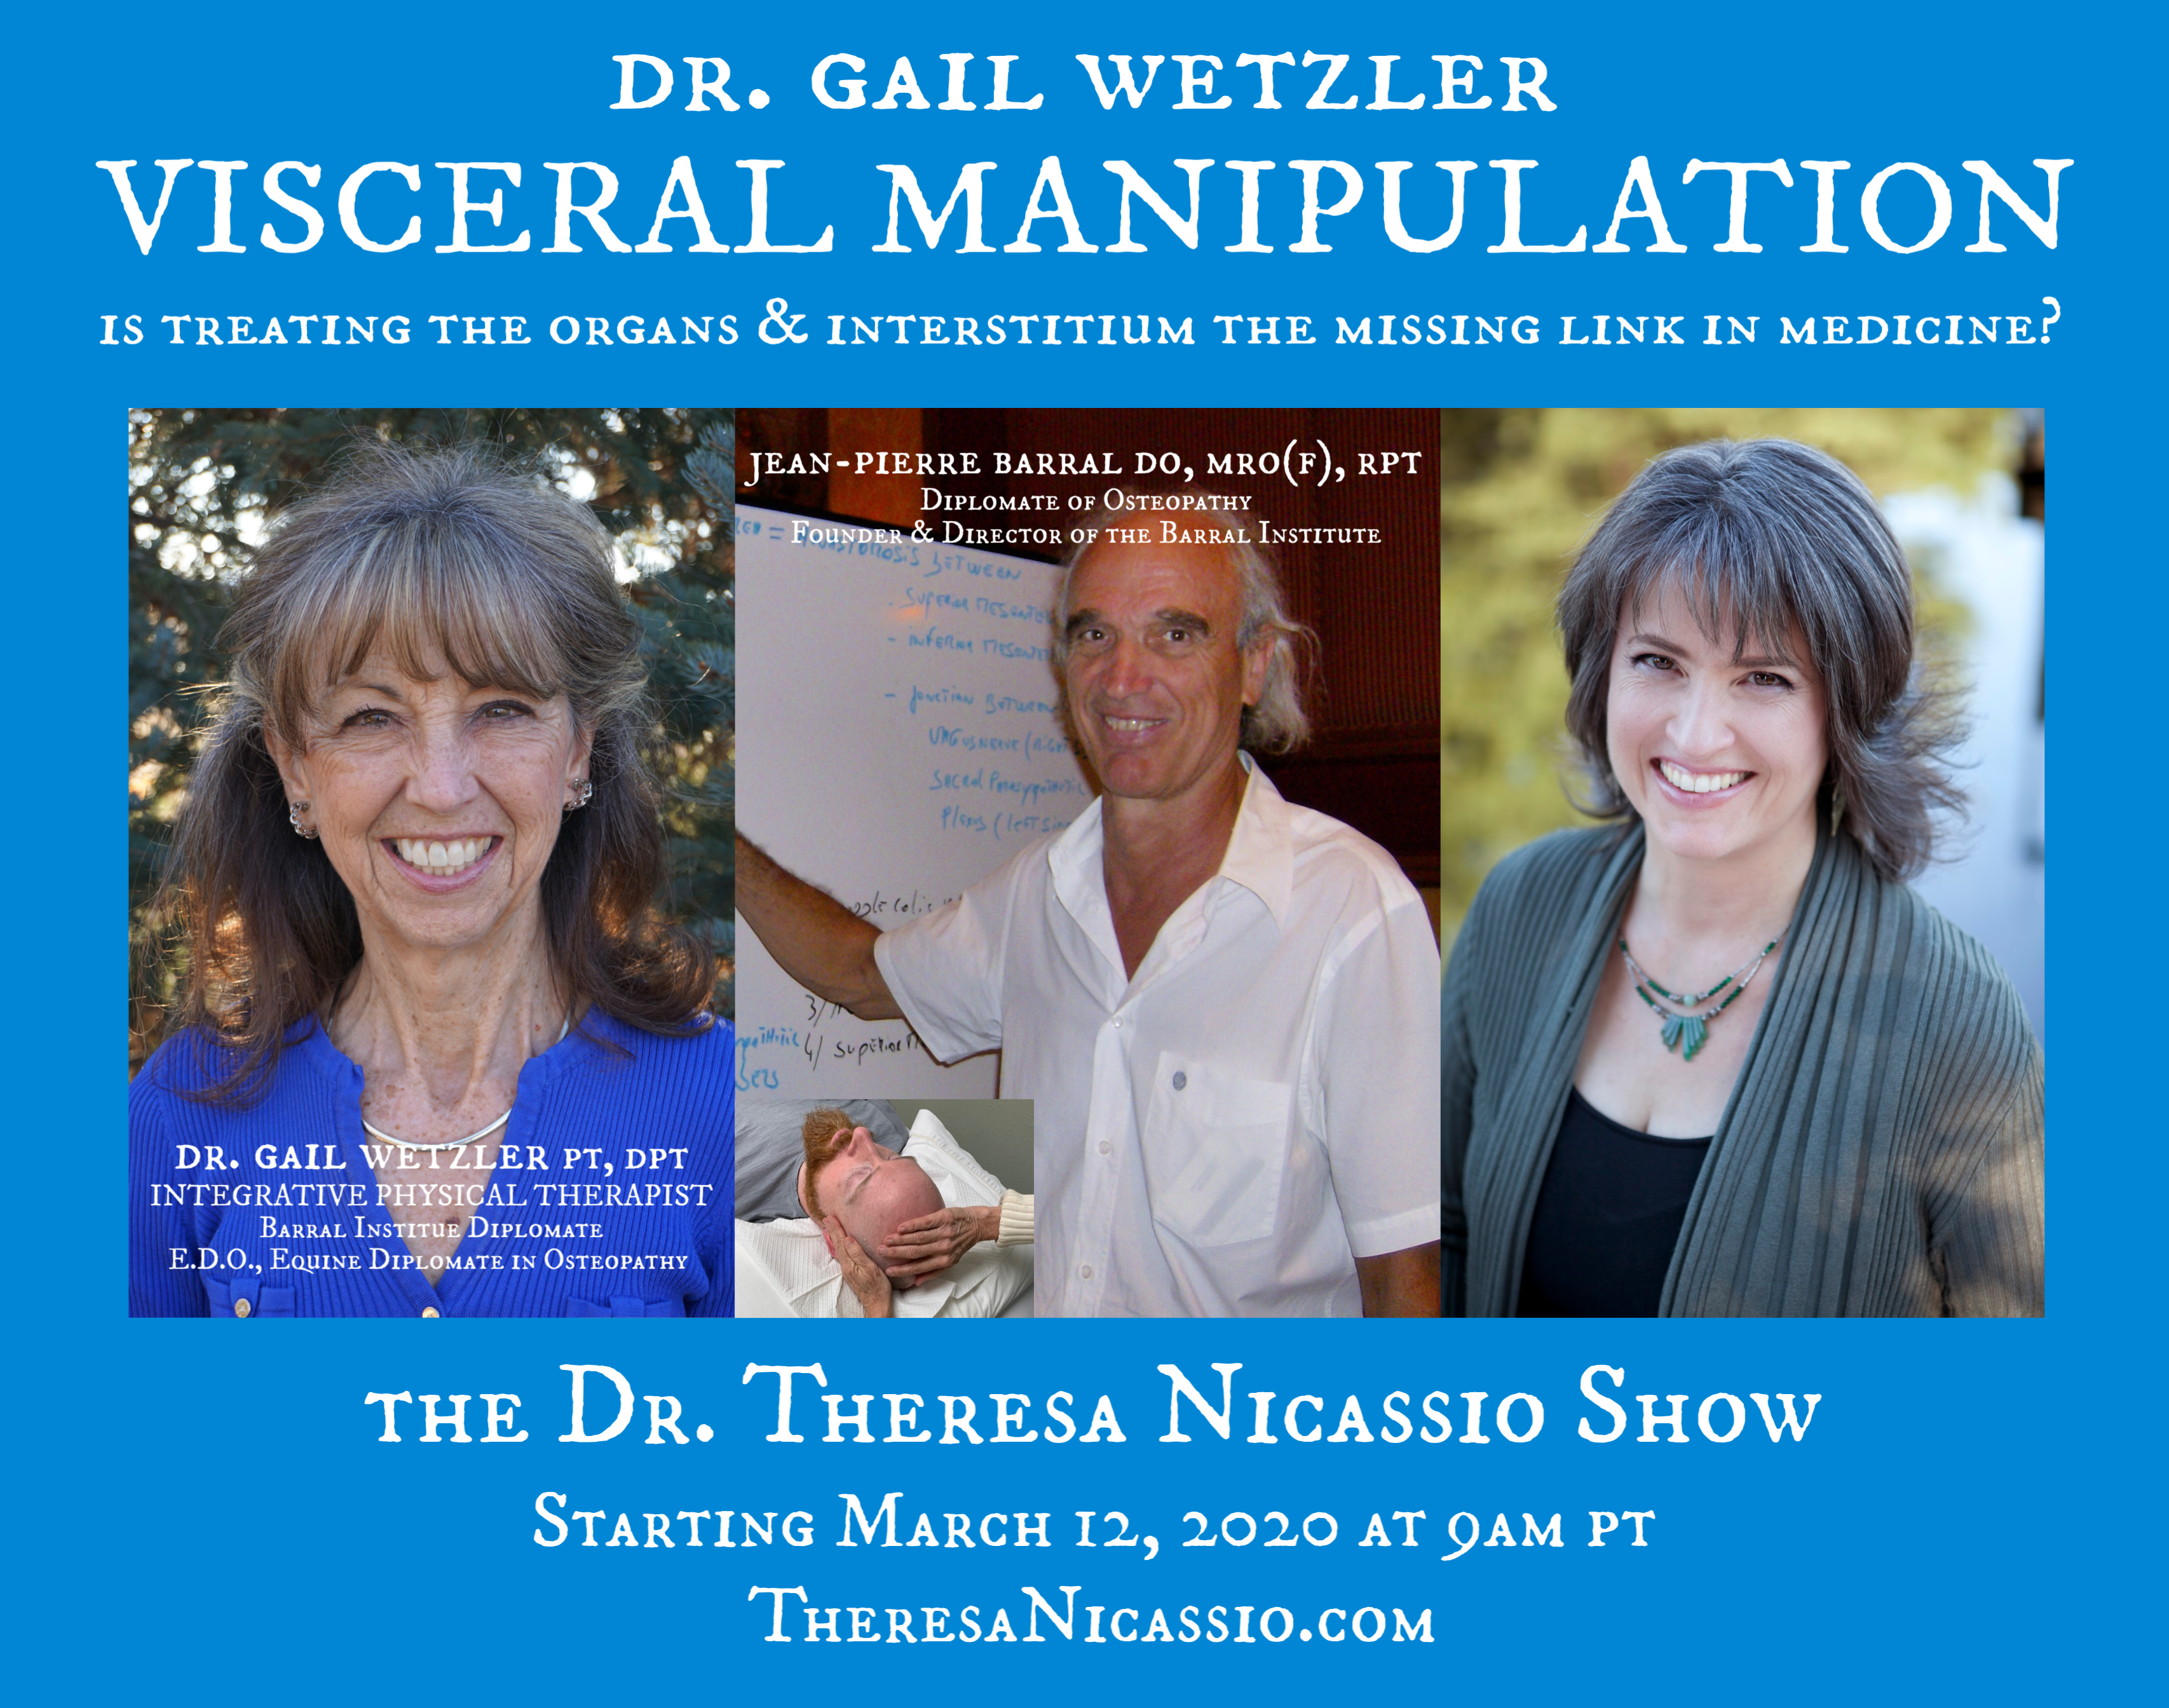 Hear Curriculum Director of the Barral Institute,  Dr. Gail Wetzler, talk about Visceral Manipulation modalities and the interrelationships of the deeper connective tissues in our body (visceral, neurological, vascular) to muscular/skeletal, cellular, cognitive, and emotional challenges. Dr. Gail will also talk about the Osteopathic Legend - Pioneer, Diplomate, and Physical Therapist, Jean-Pierre Barral, who has opened doors for healing structural and functional health conditions never before thought possible, shifting the core benefits of Visceral Manipulation treatments for patient care from adjunctive to center stage.